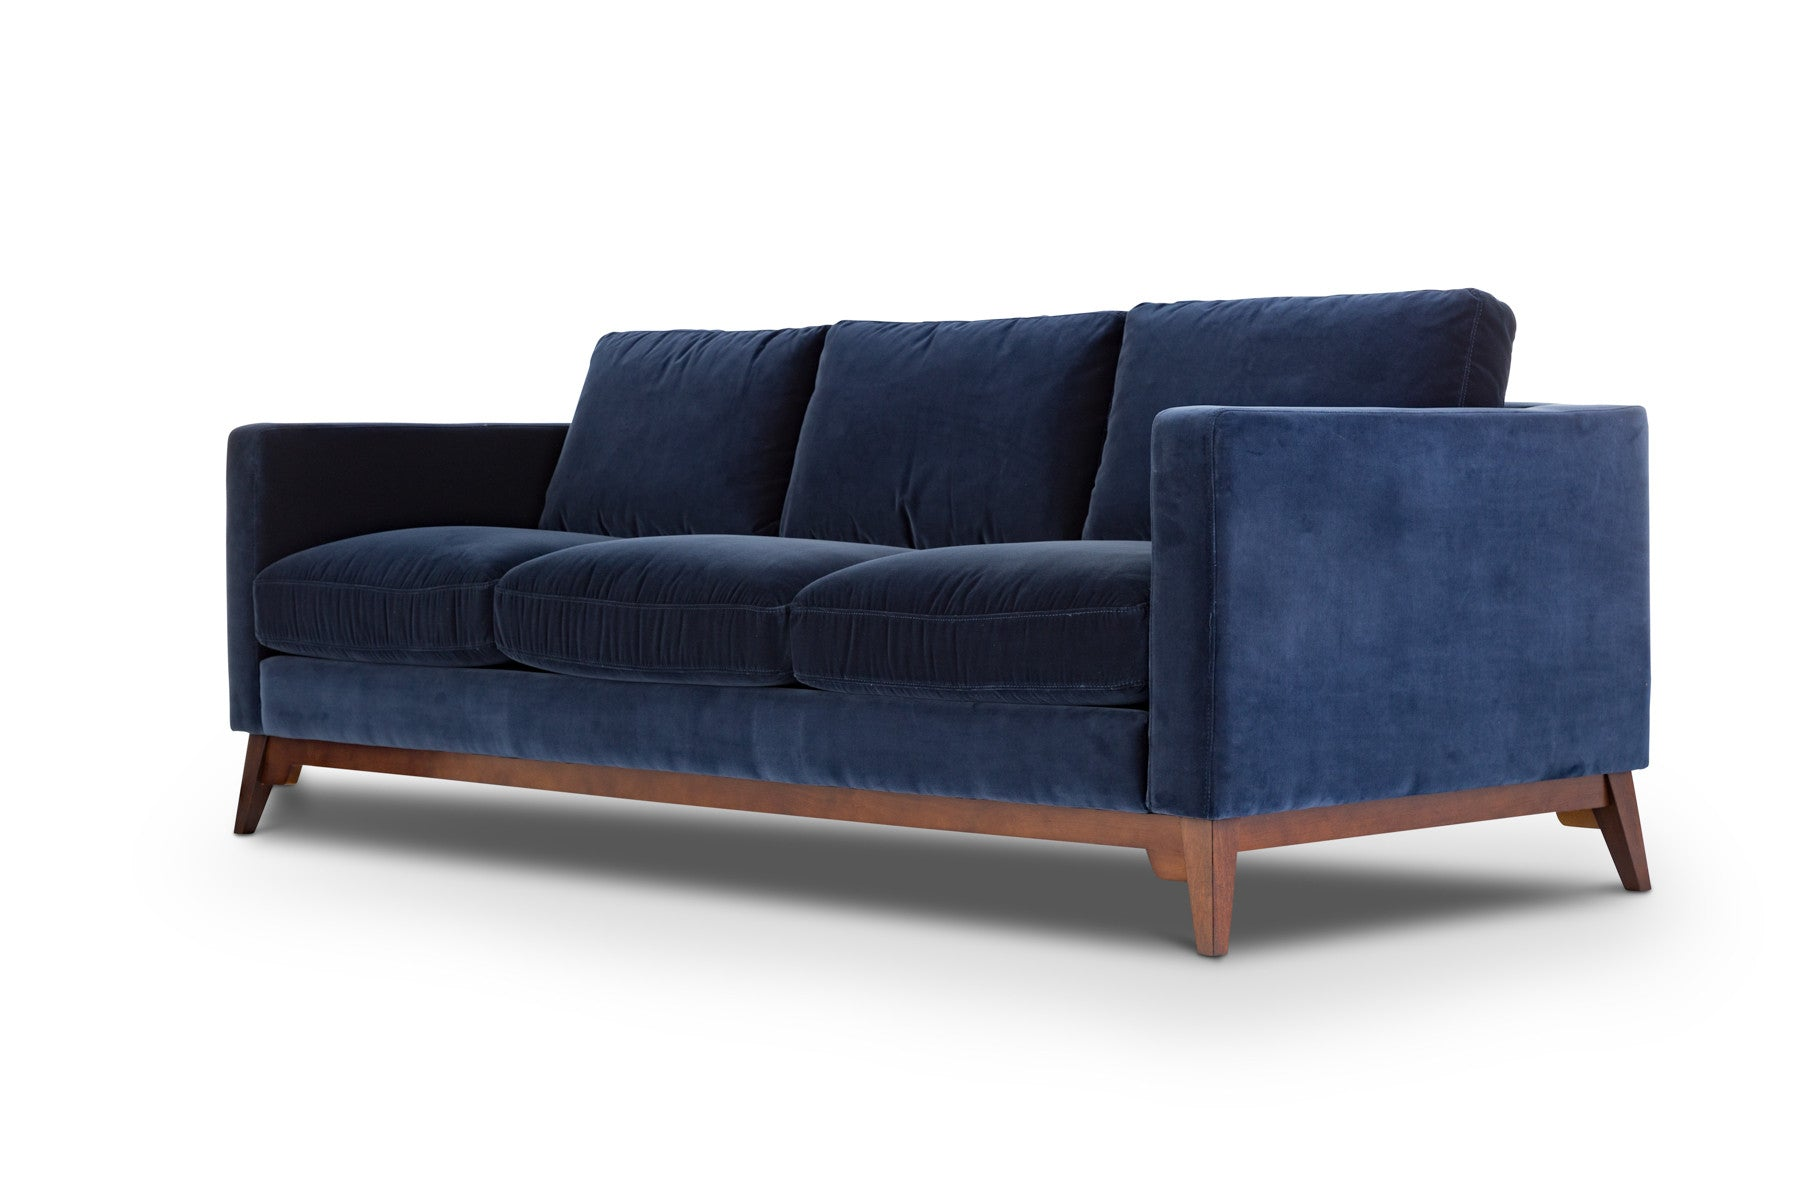 Chantelle Cotton Navy Modern Scandinavian Sofa Couch – jovili